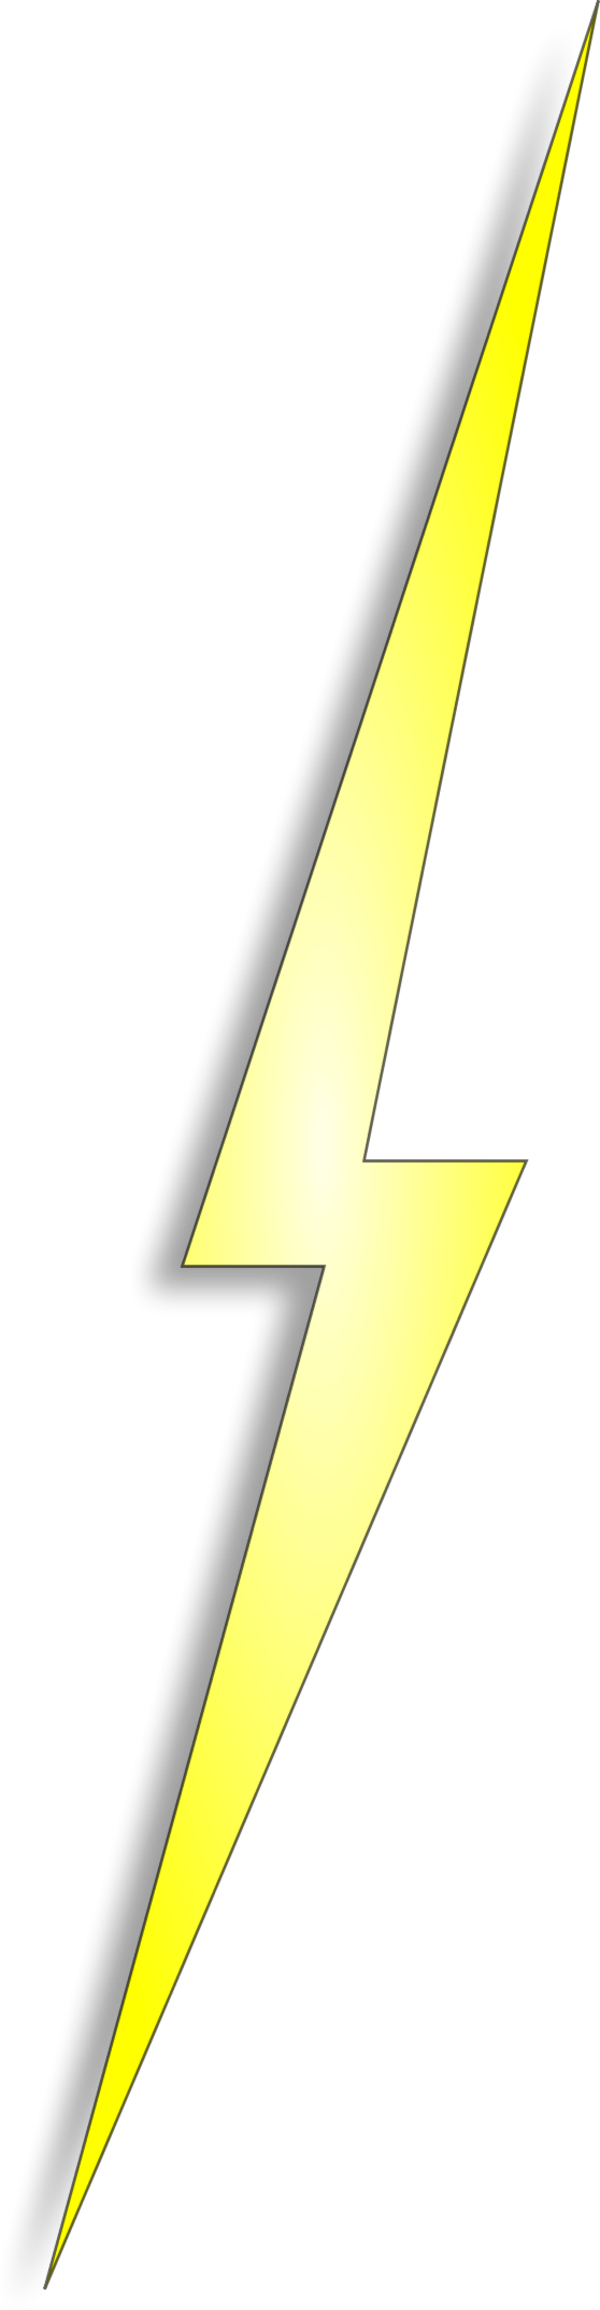 Yellow lightning clipart clip black and white download Free Thunder And Lightning Clipart, Download Free Clip Art ... clip black and white download